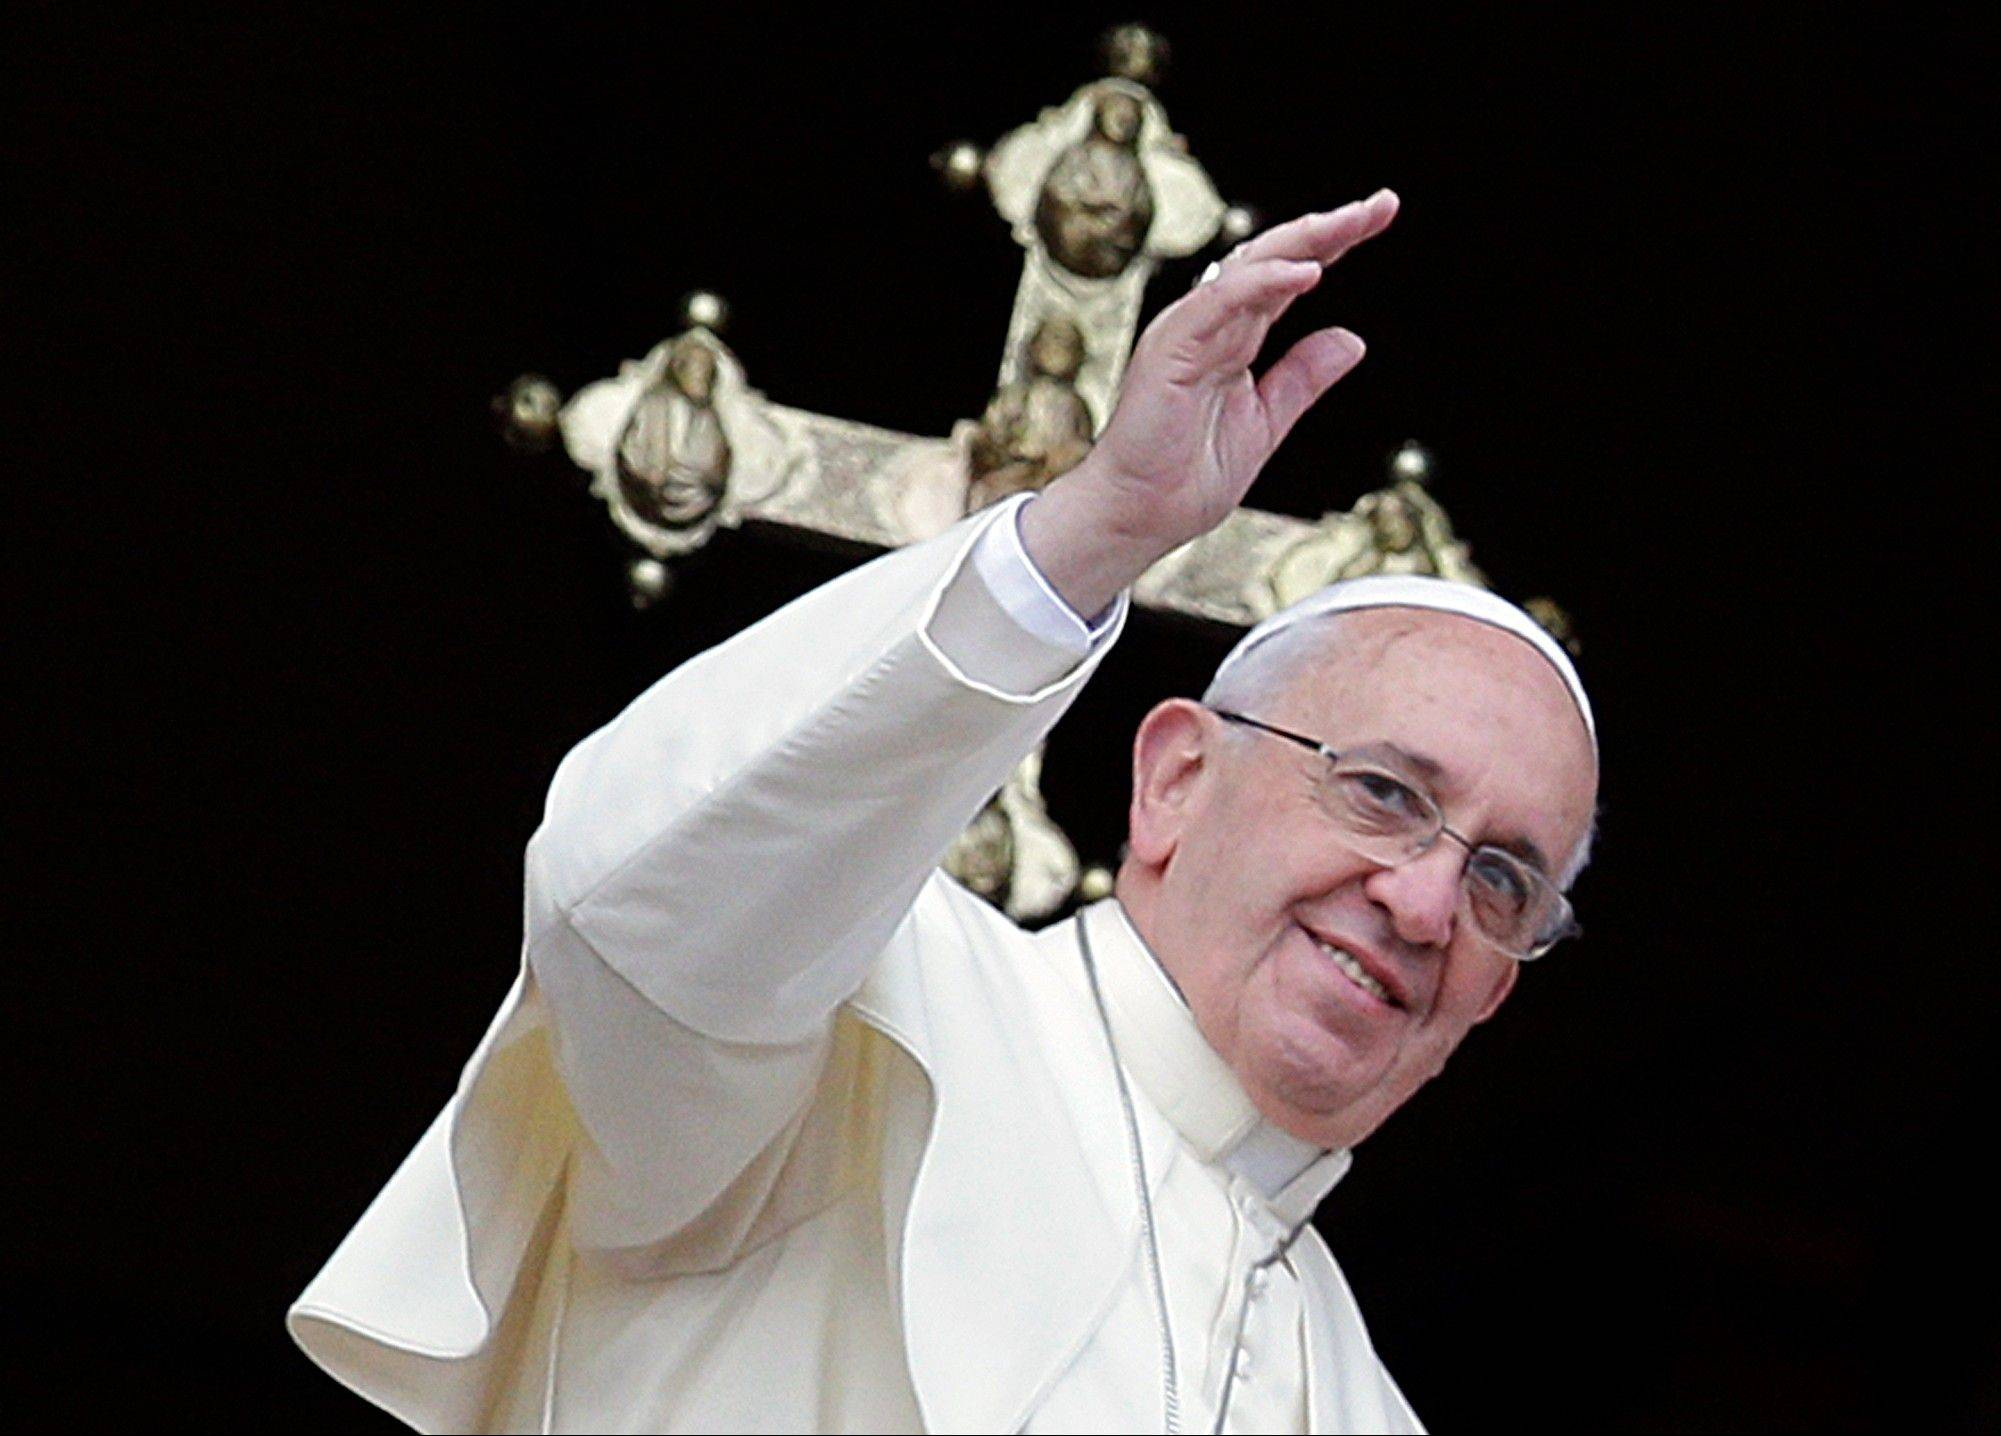 Pope Francis delivers his �Urbi et Orbi� (to the City and to the World) message from the central balcony of St. Peter�s Basilica at the Vatican, Wednesday. Francis wished for a better world, with peace for the land of Jesus� birth, for Syria and Africa, as well as for the dignity of migrants and refugees fleeing misery and conflict.